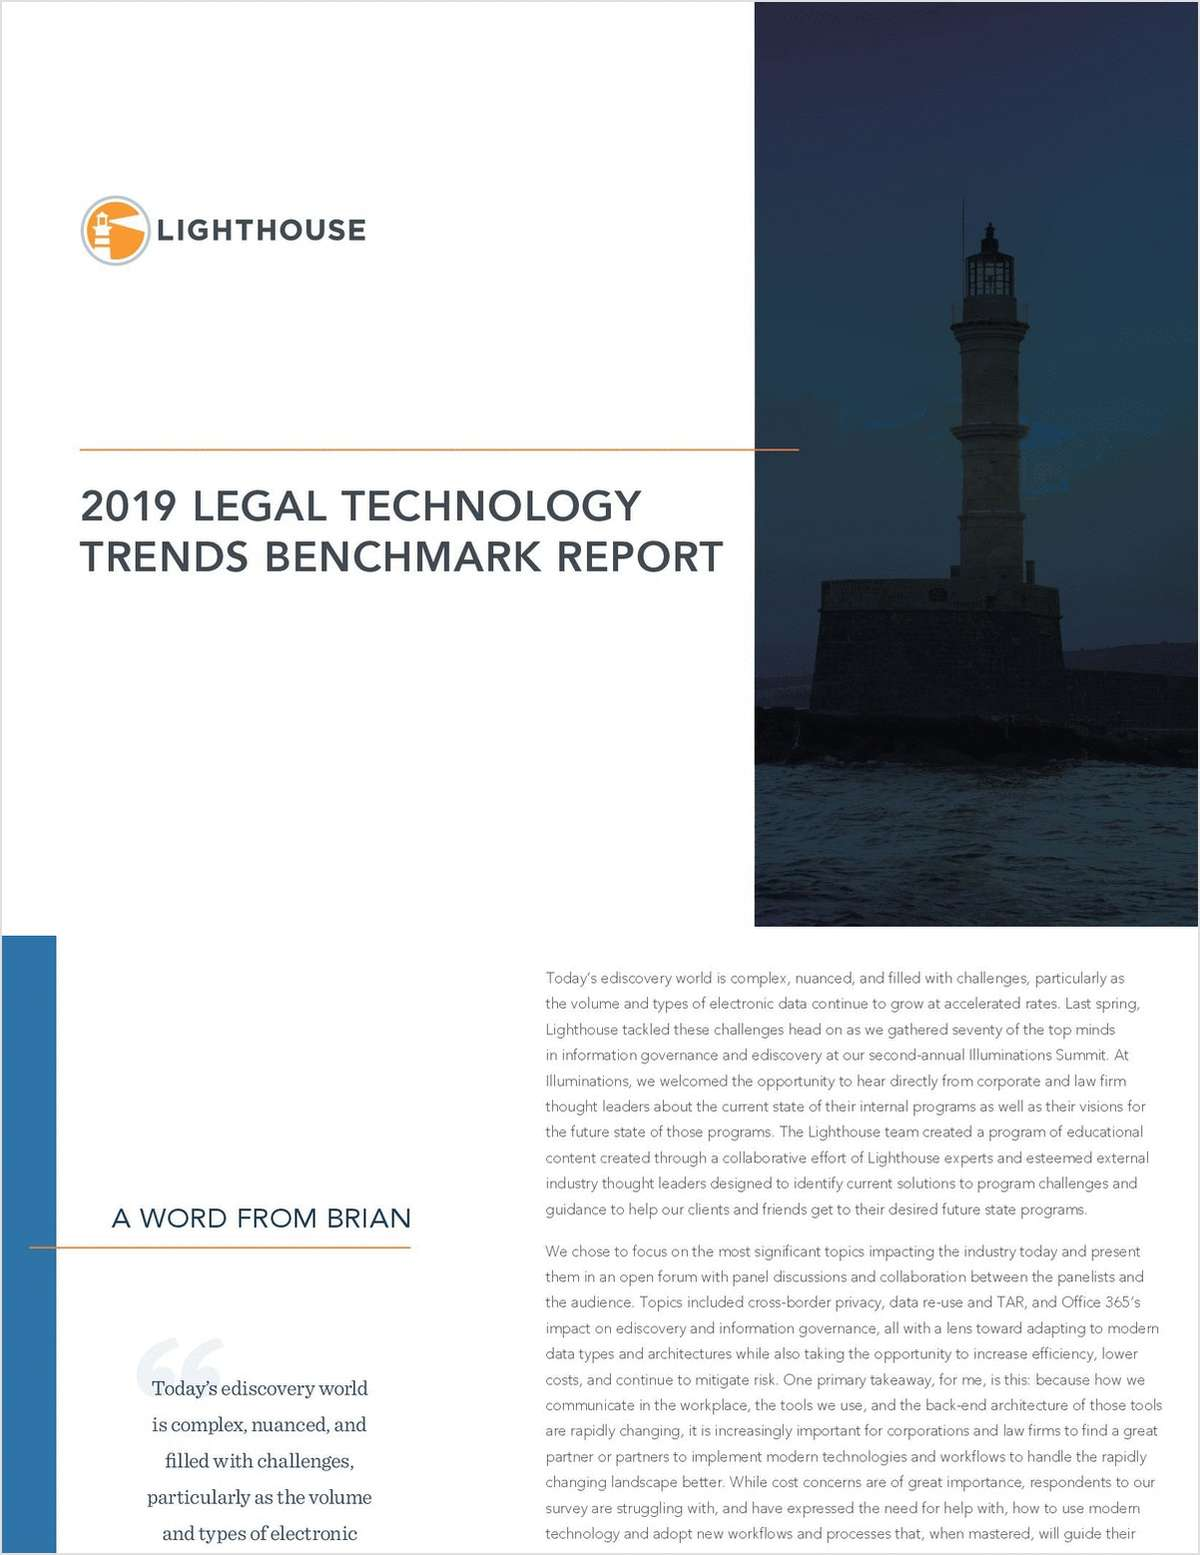 2019 Legal Technology Trends Benchmark Report